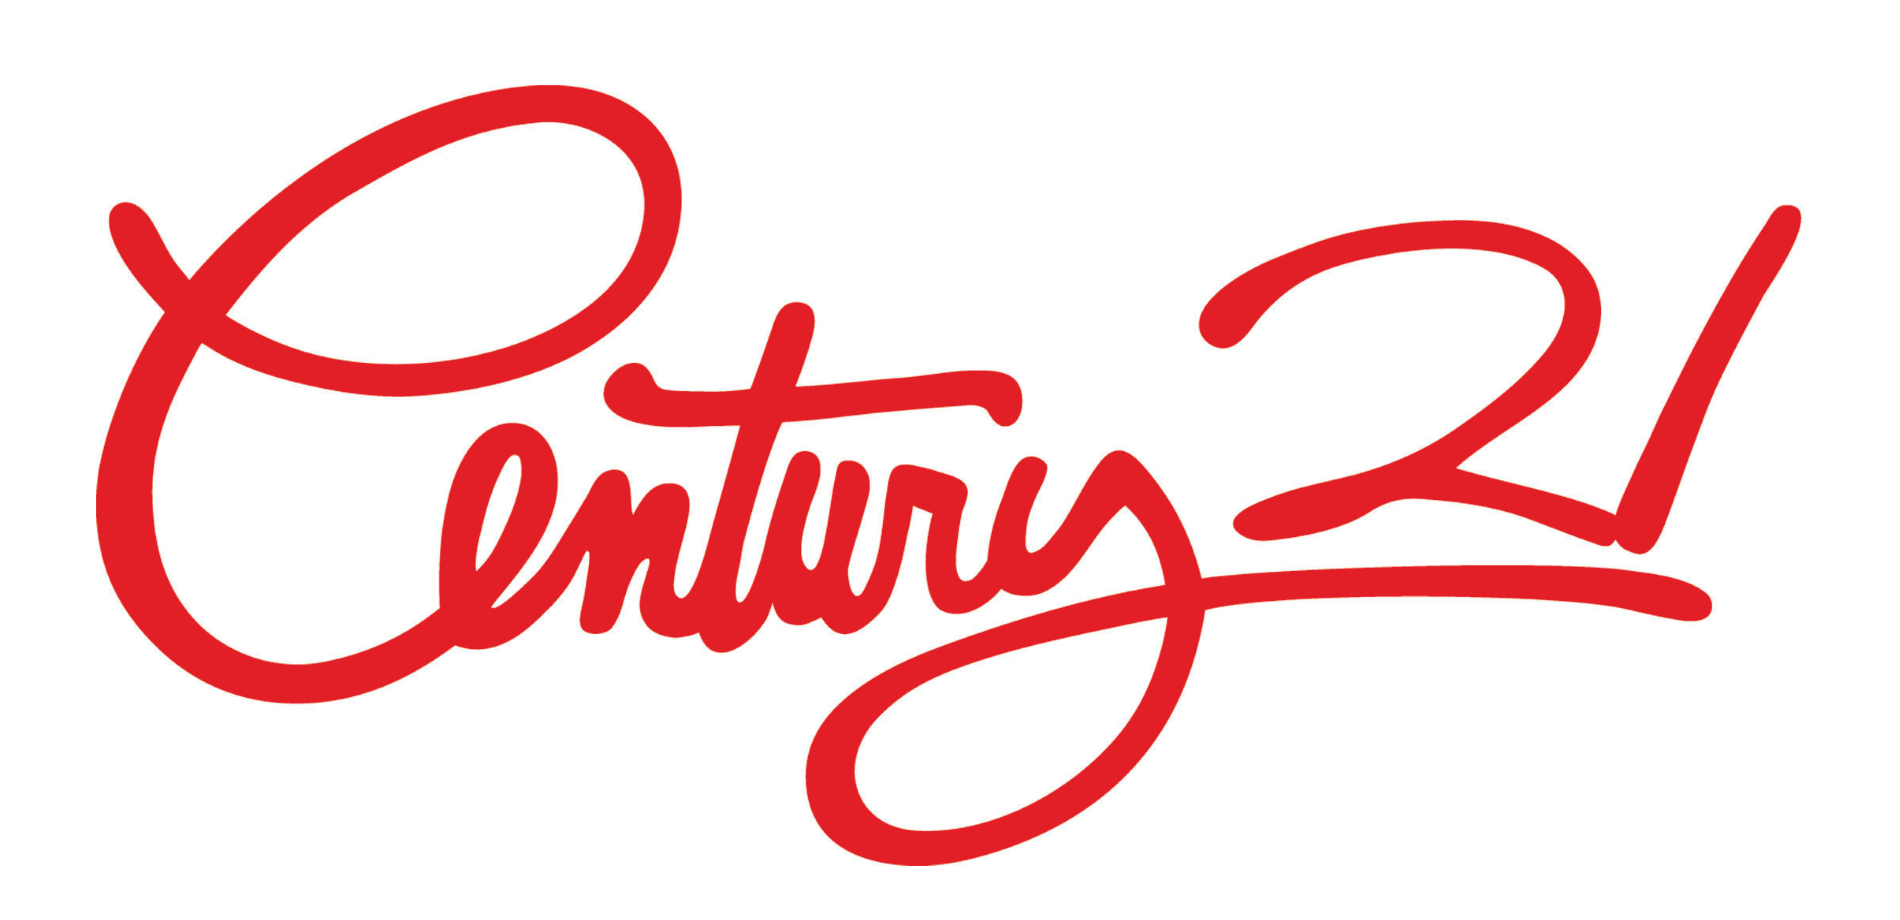 century 21 logos download century 21 logo png century 21 logos download gold